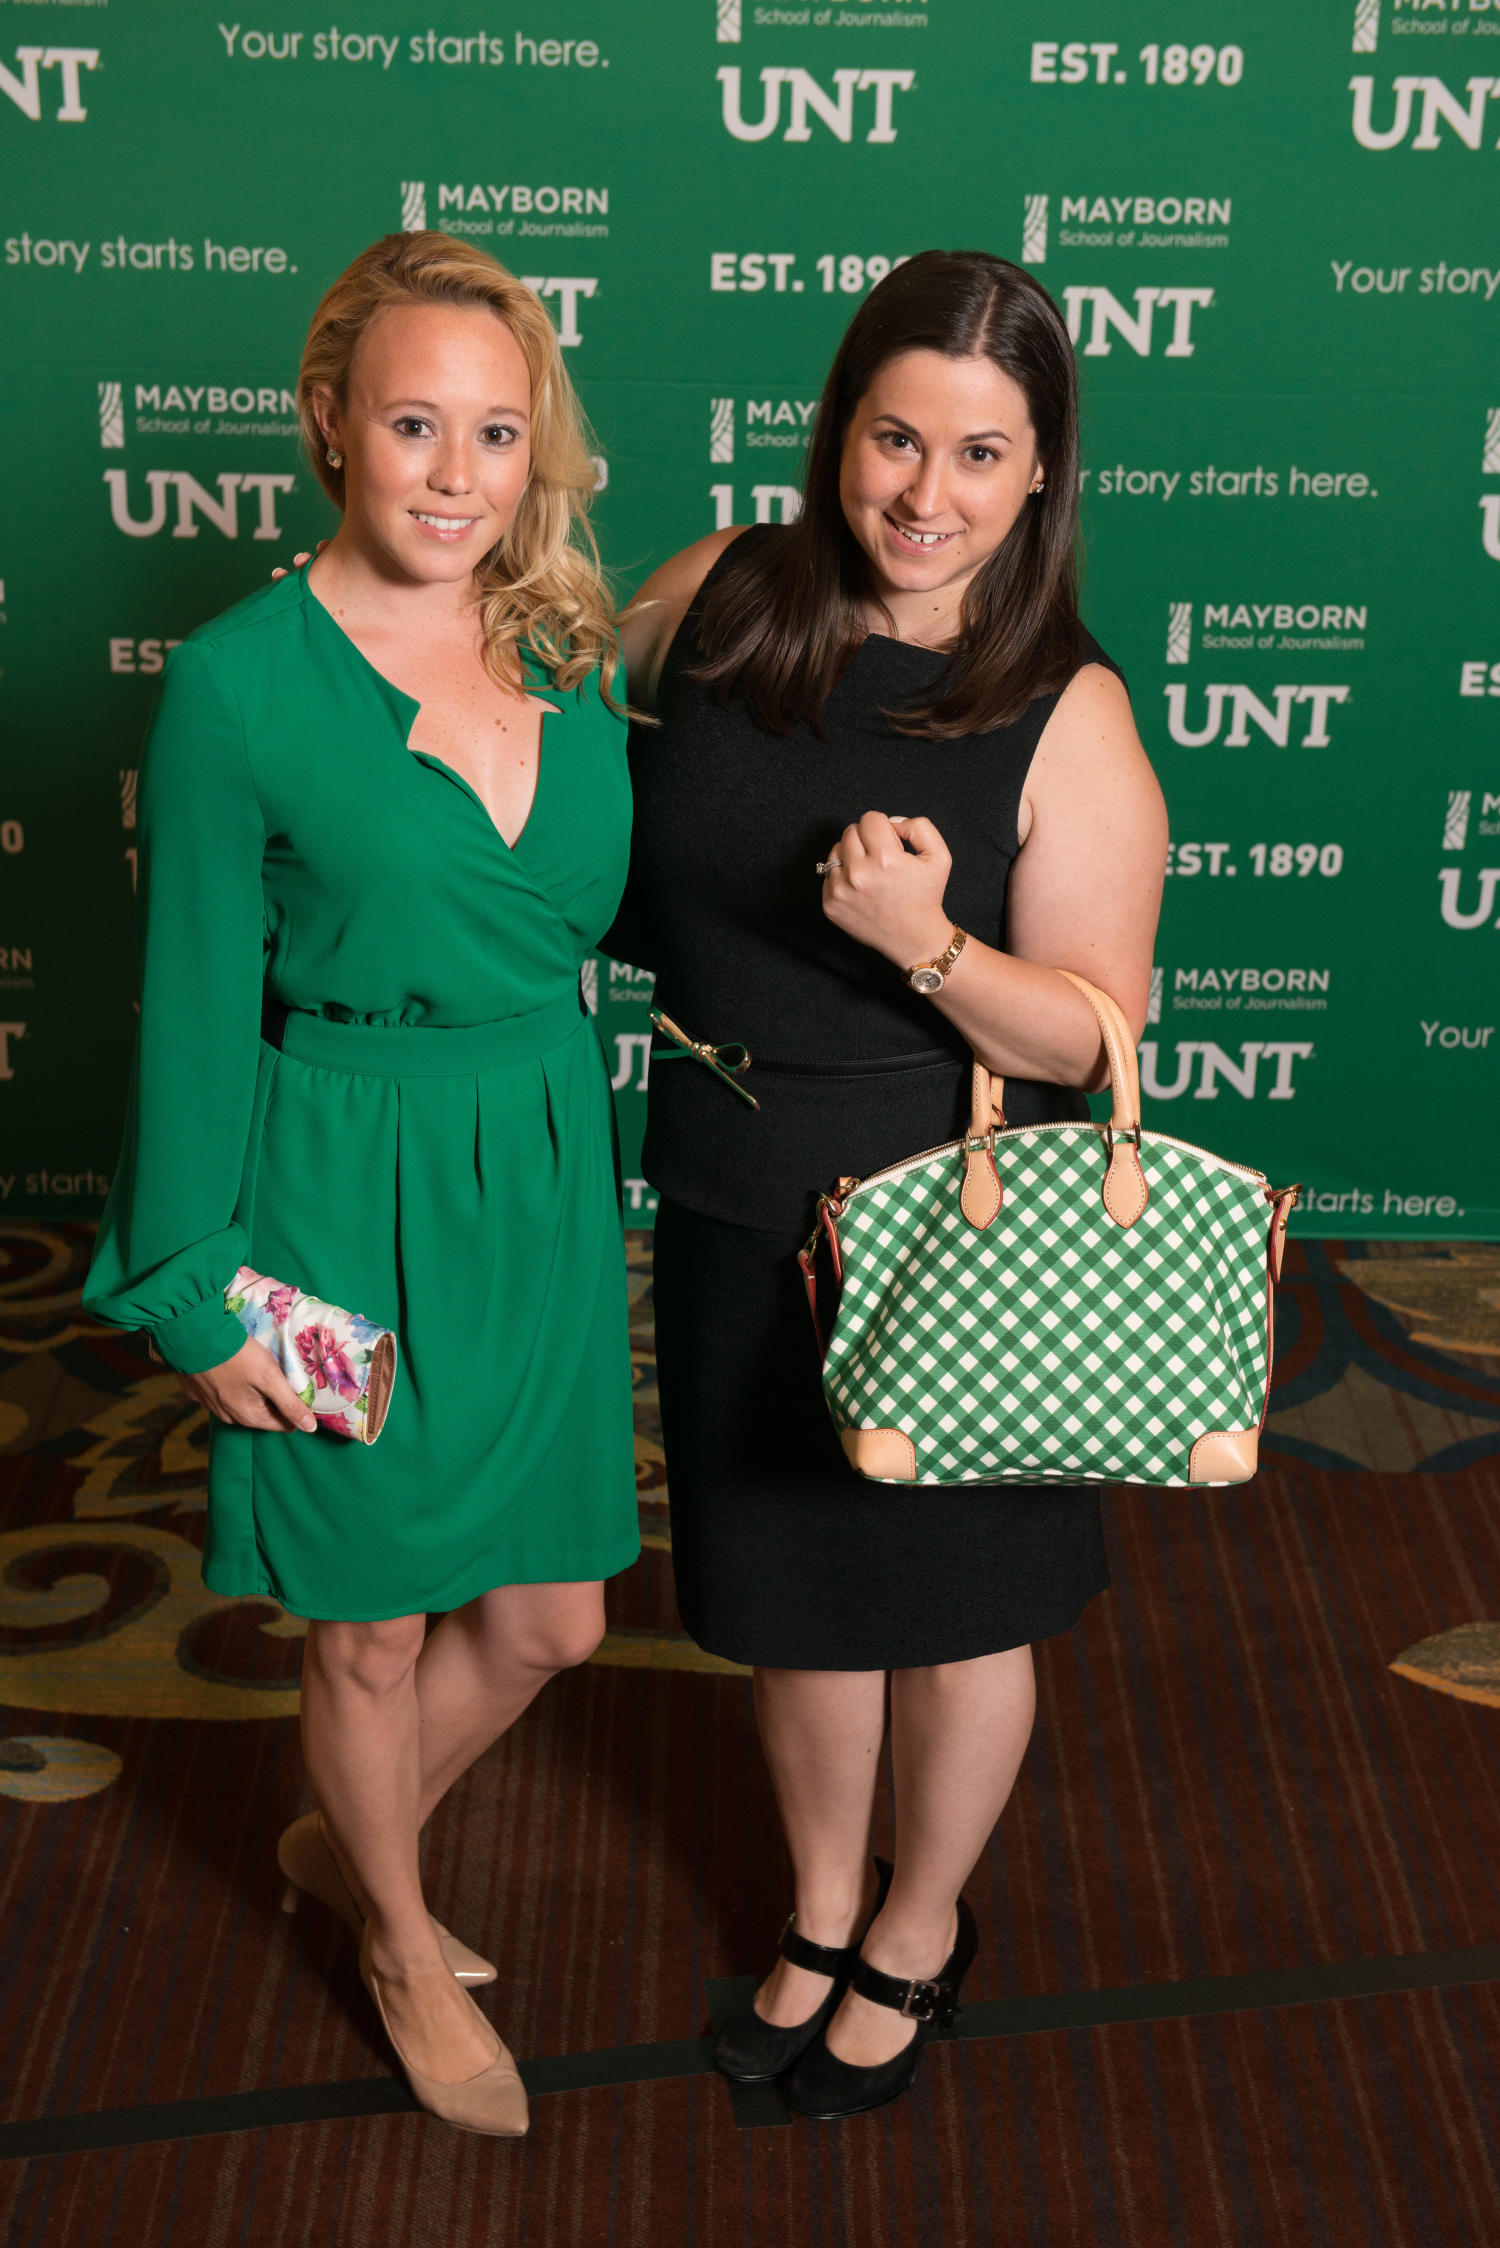 [Two women standing together at Literary Lights Dinner], Photograph of two women standing together in front of a Mayborn and UNT backdrop during the Literary Lights Dinner. The event was held as a part of the Mayborn Literary Nonfiction Conference in the International Ballroom at the Hilton DFW Lakes Executive Conference Center, Grapevine, TX.,